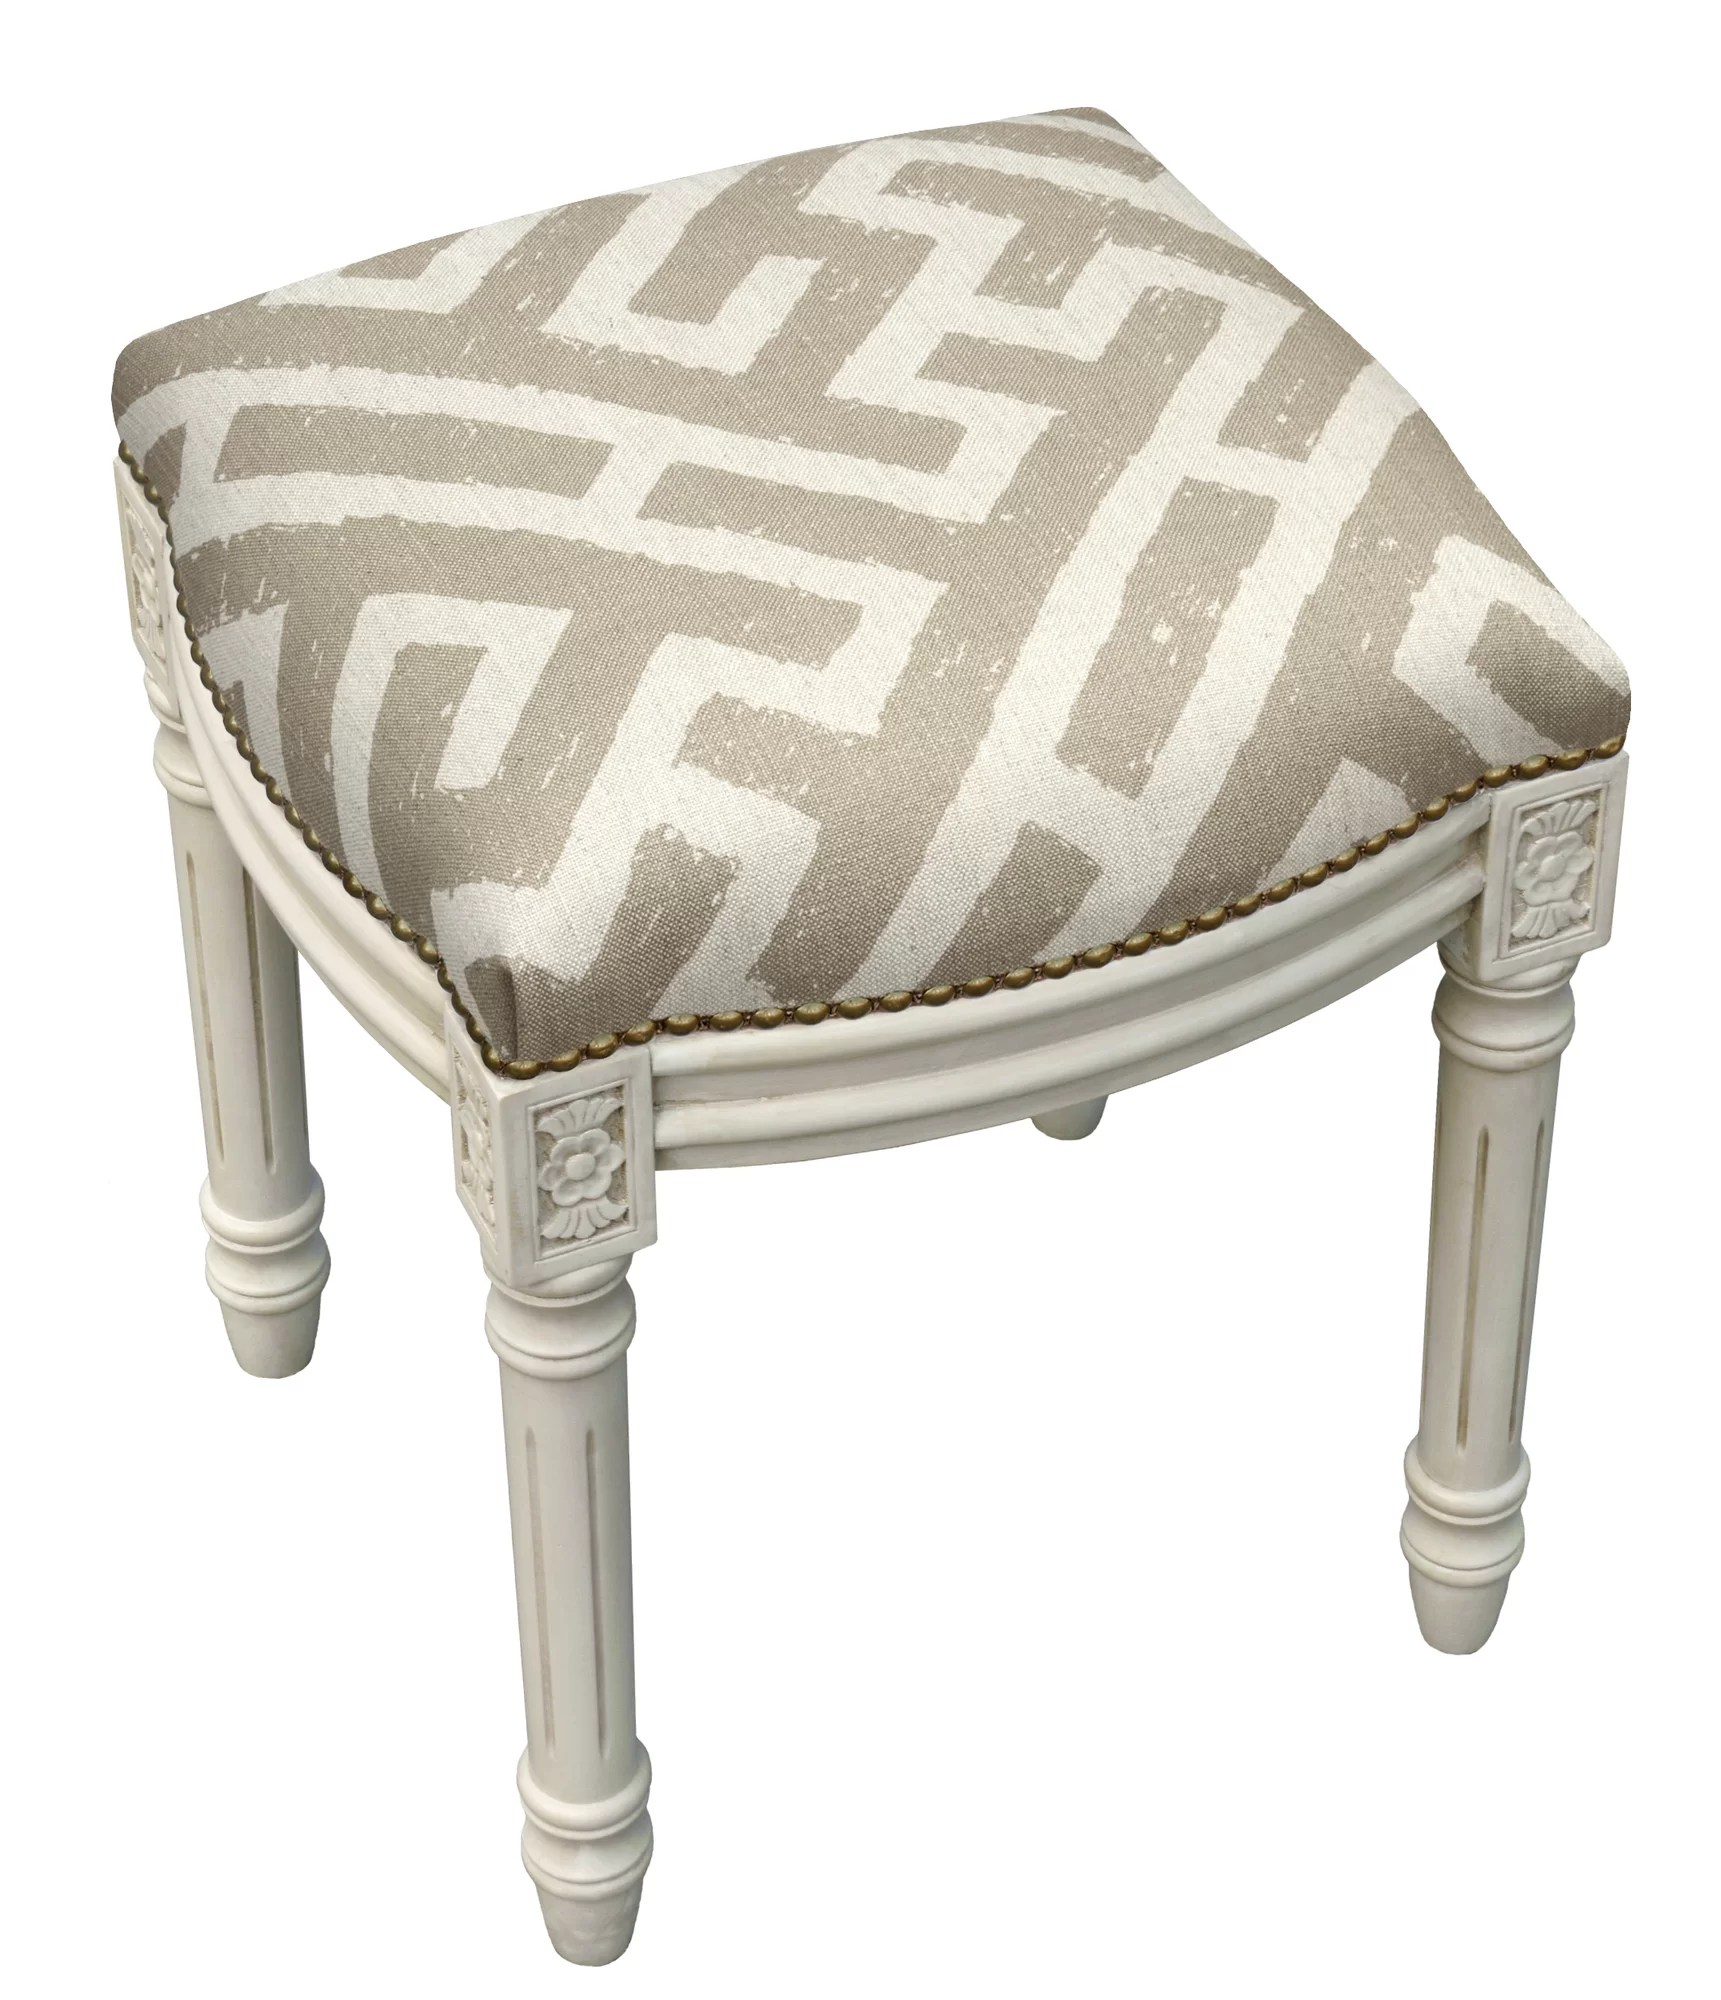 Upholstered Vanity Chair 123 Creations Graphic Lattice Linen Upholstered Vanity